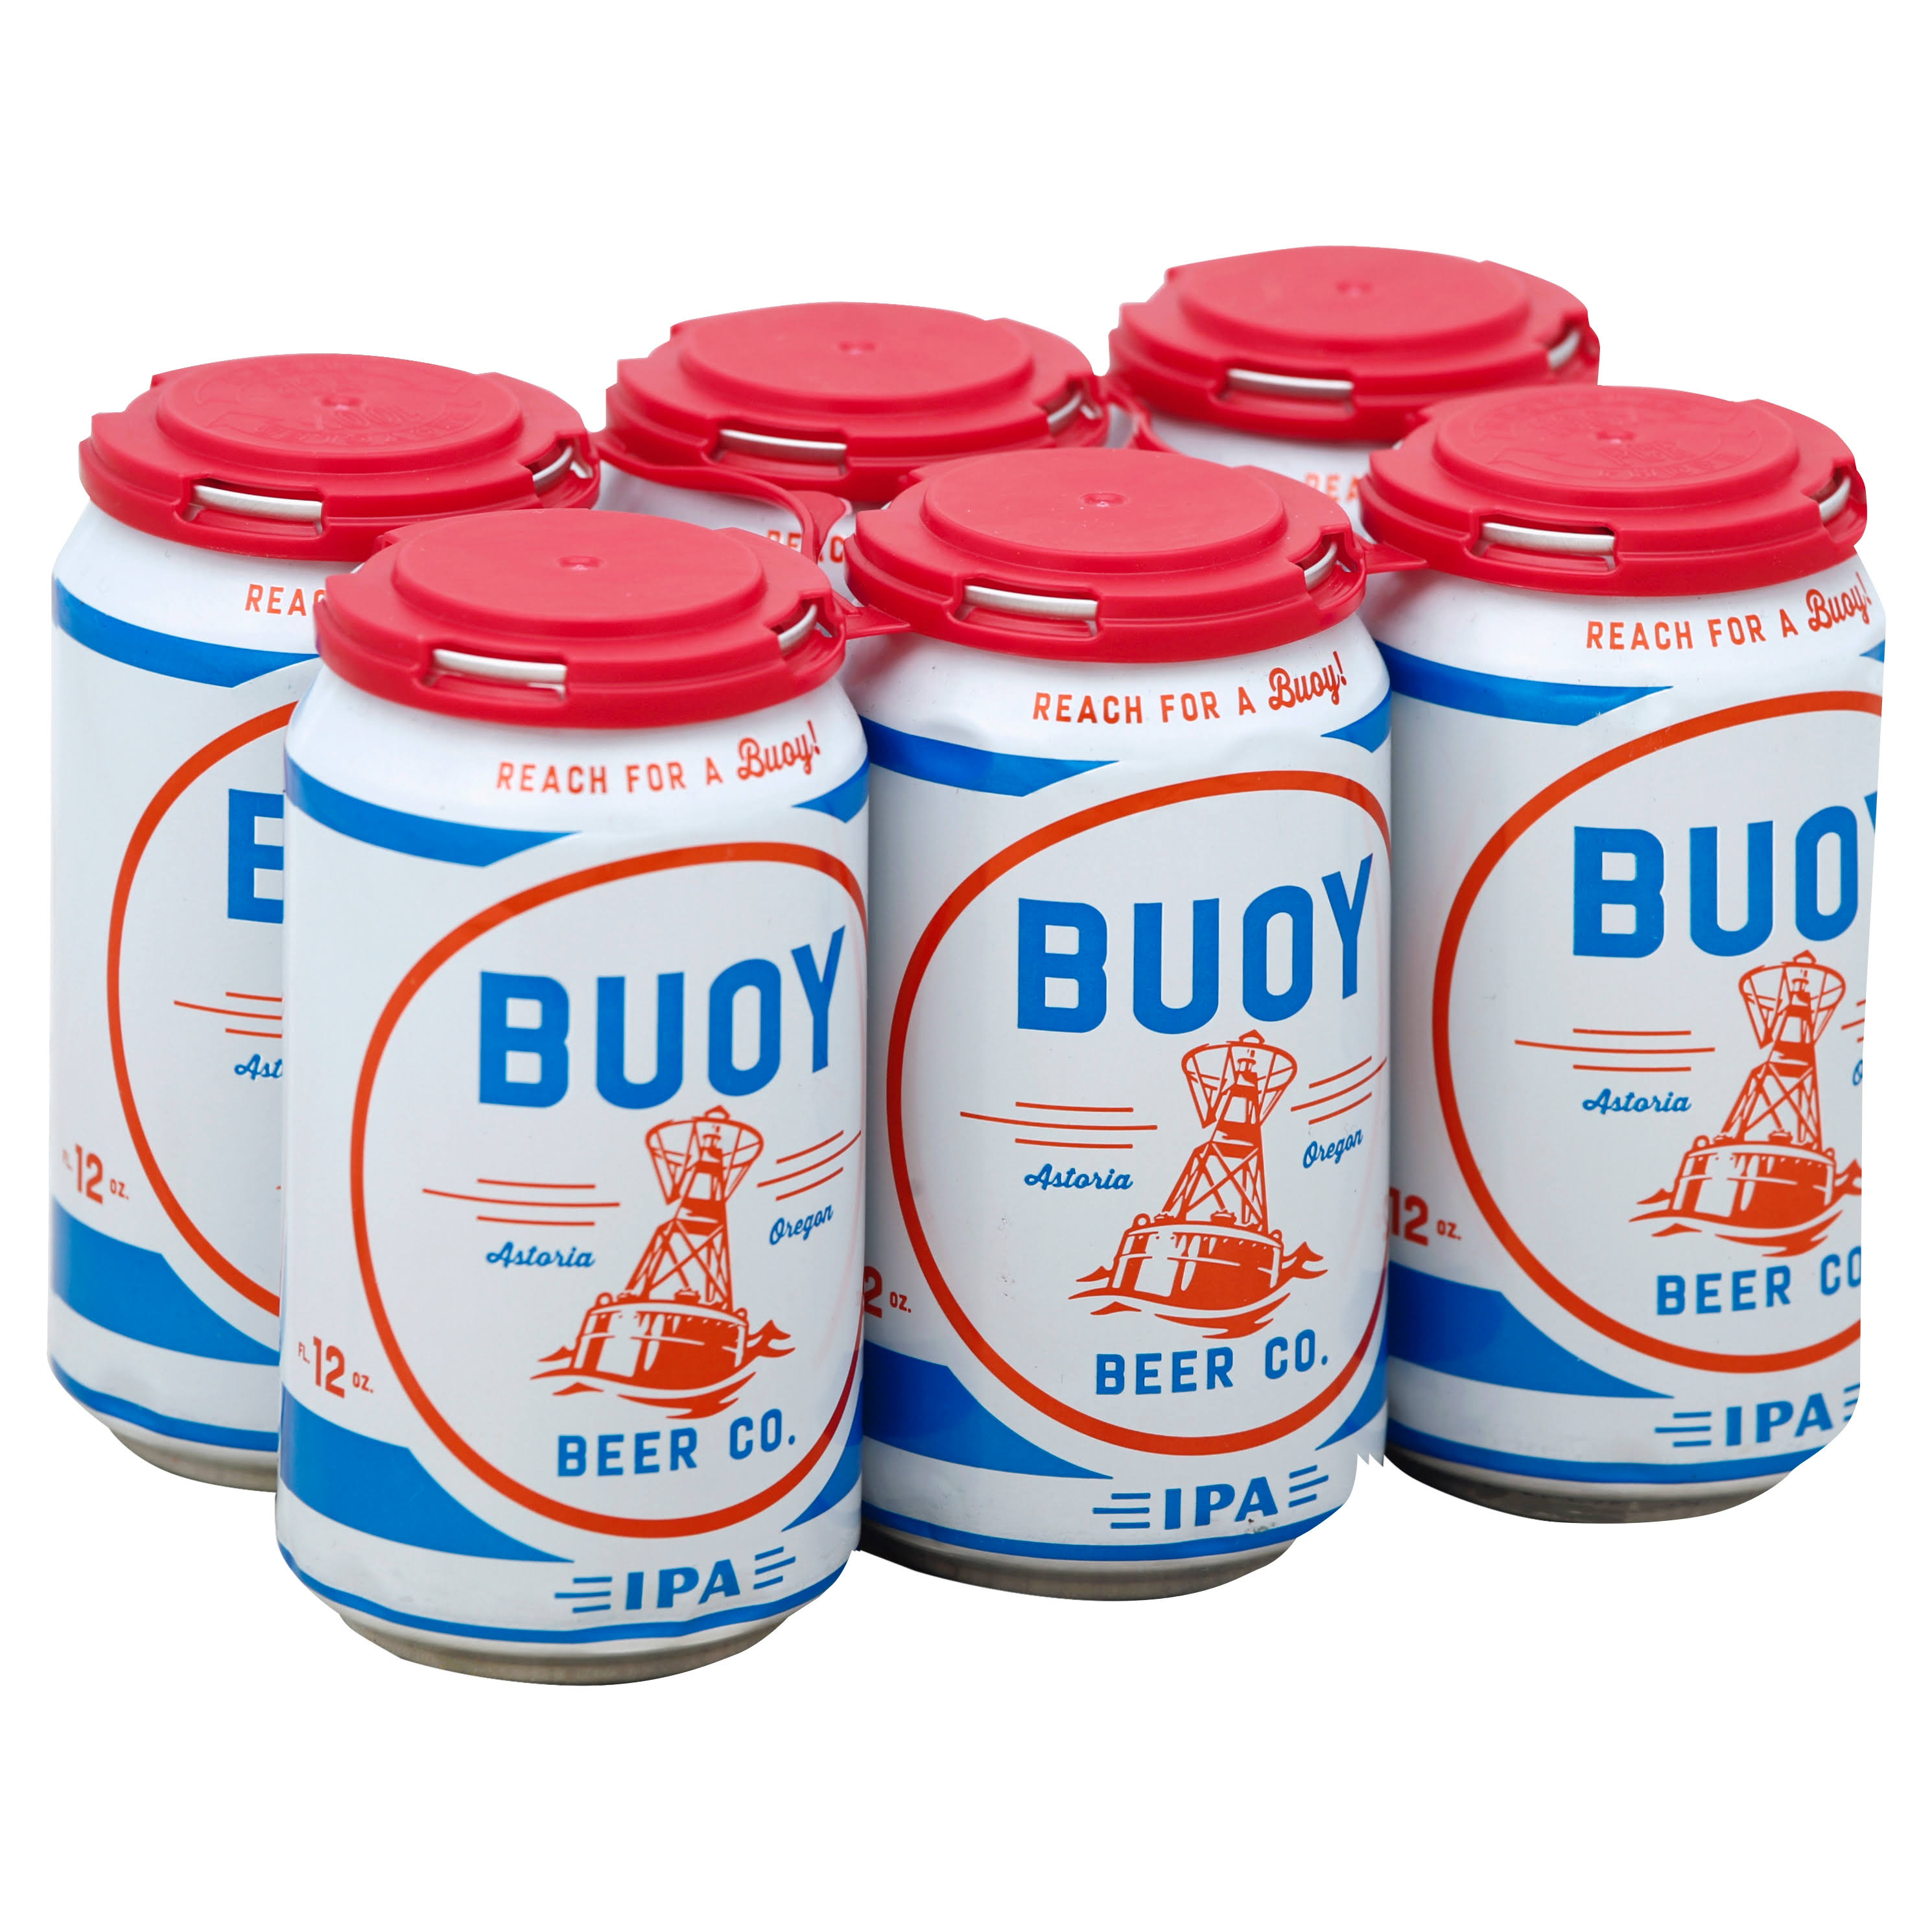 Buoy Beer, IPA - 6 pack, 12 fl oz cans